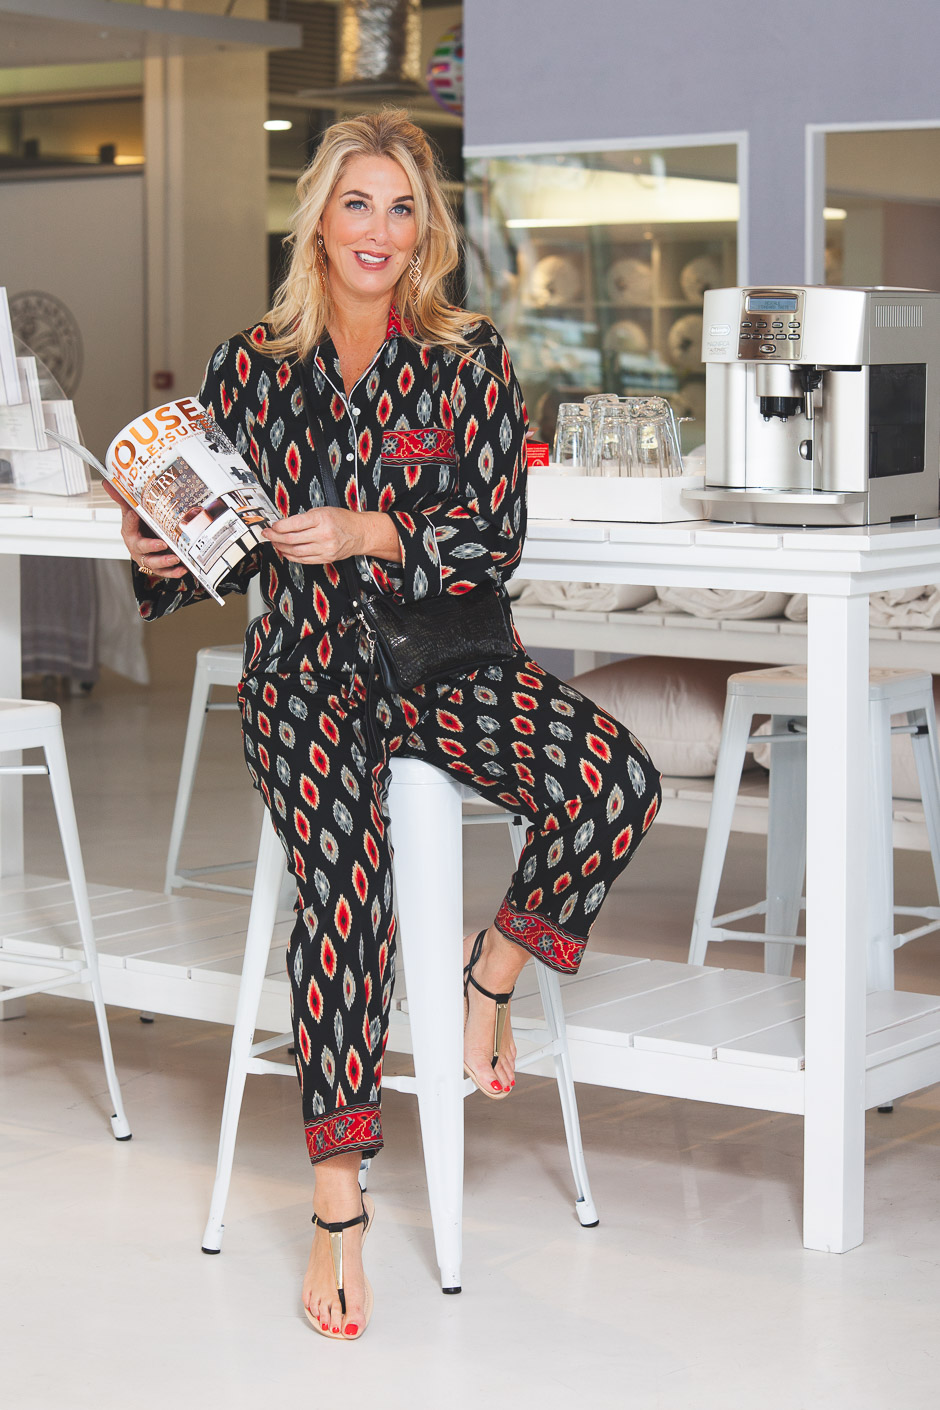 'What I am Wearing' Summer Edition - The Pyjama Trend from Offtherails